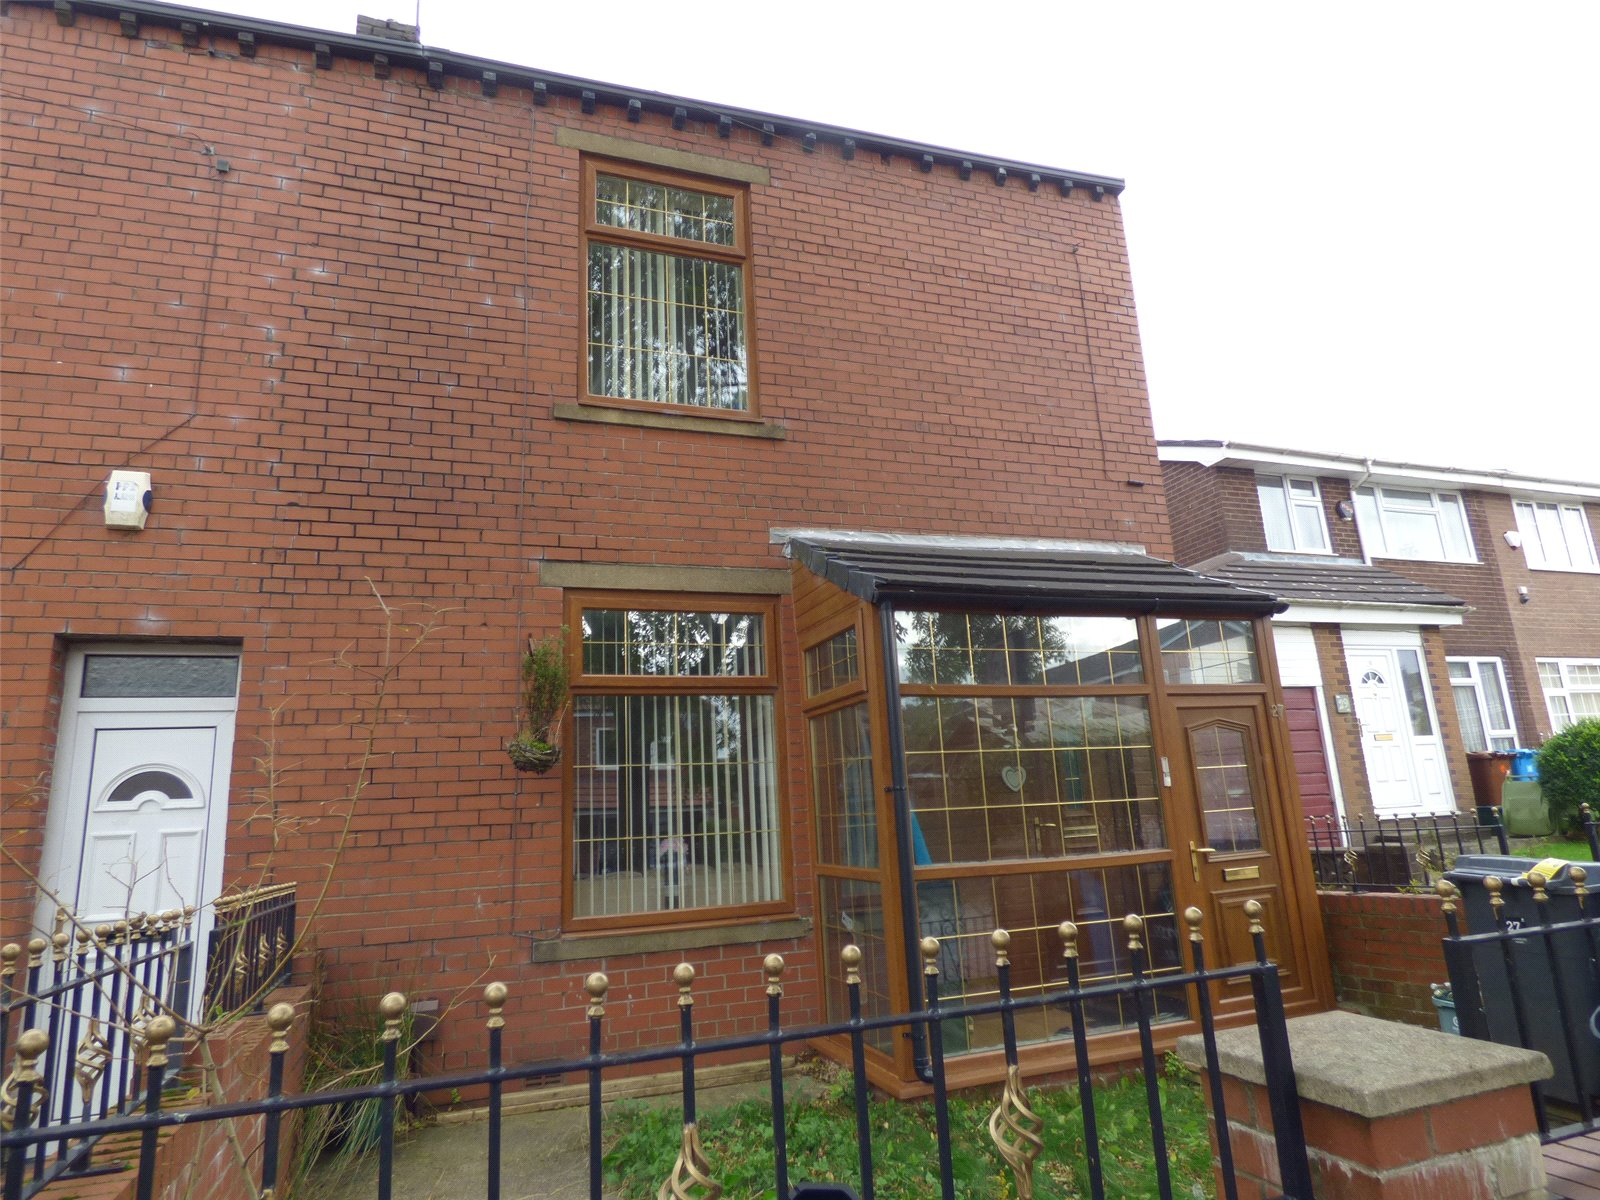 3 Bedrooms End Of Terrace House for sale in Game Street, Roundthorn, Oldham, Greater Manchester, OL4